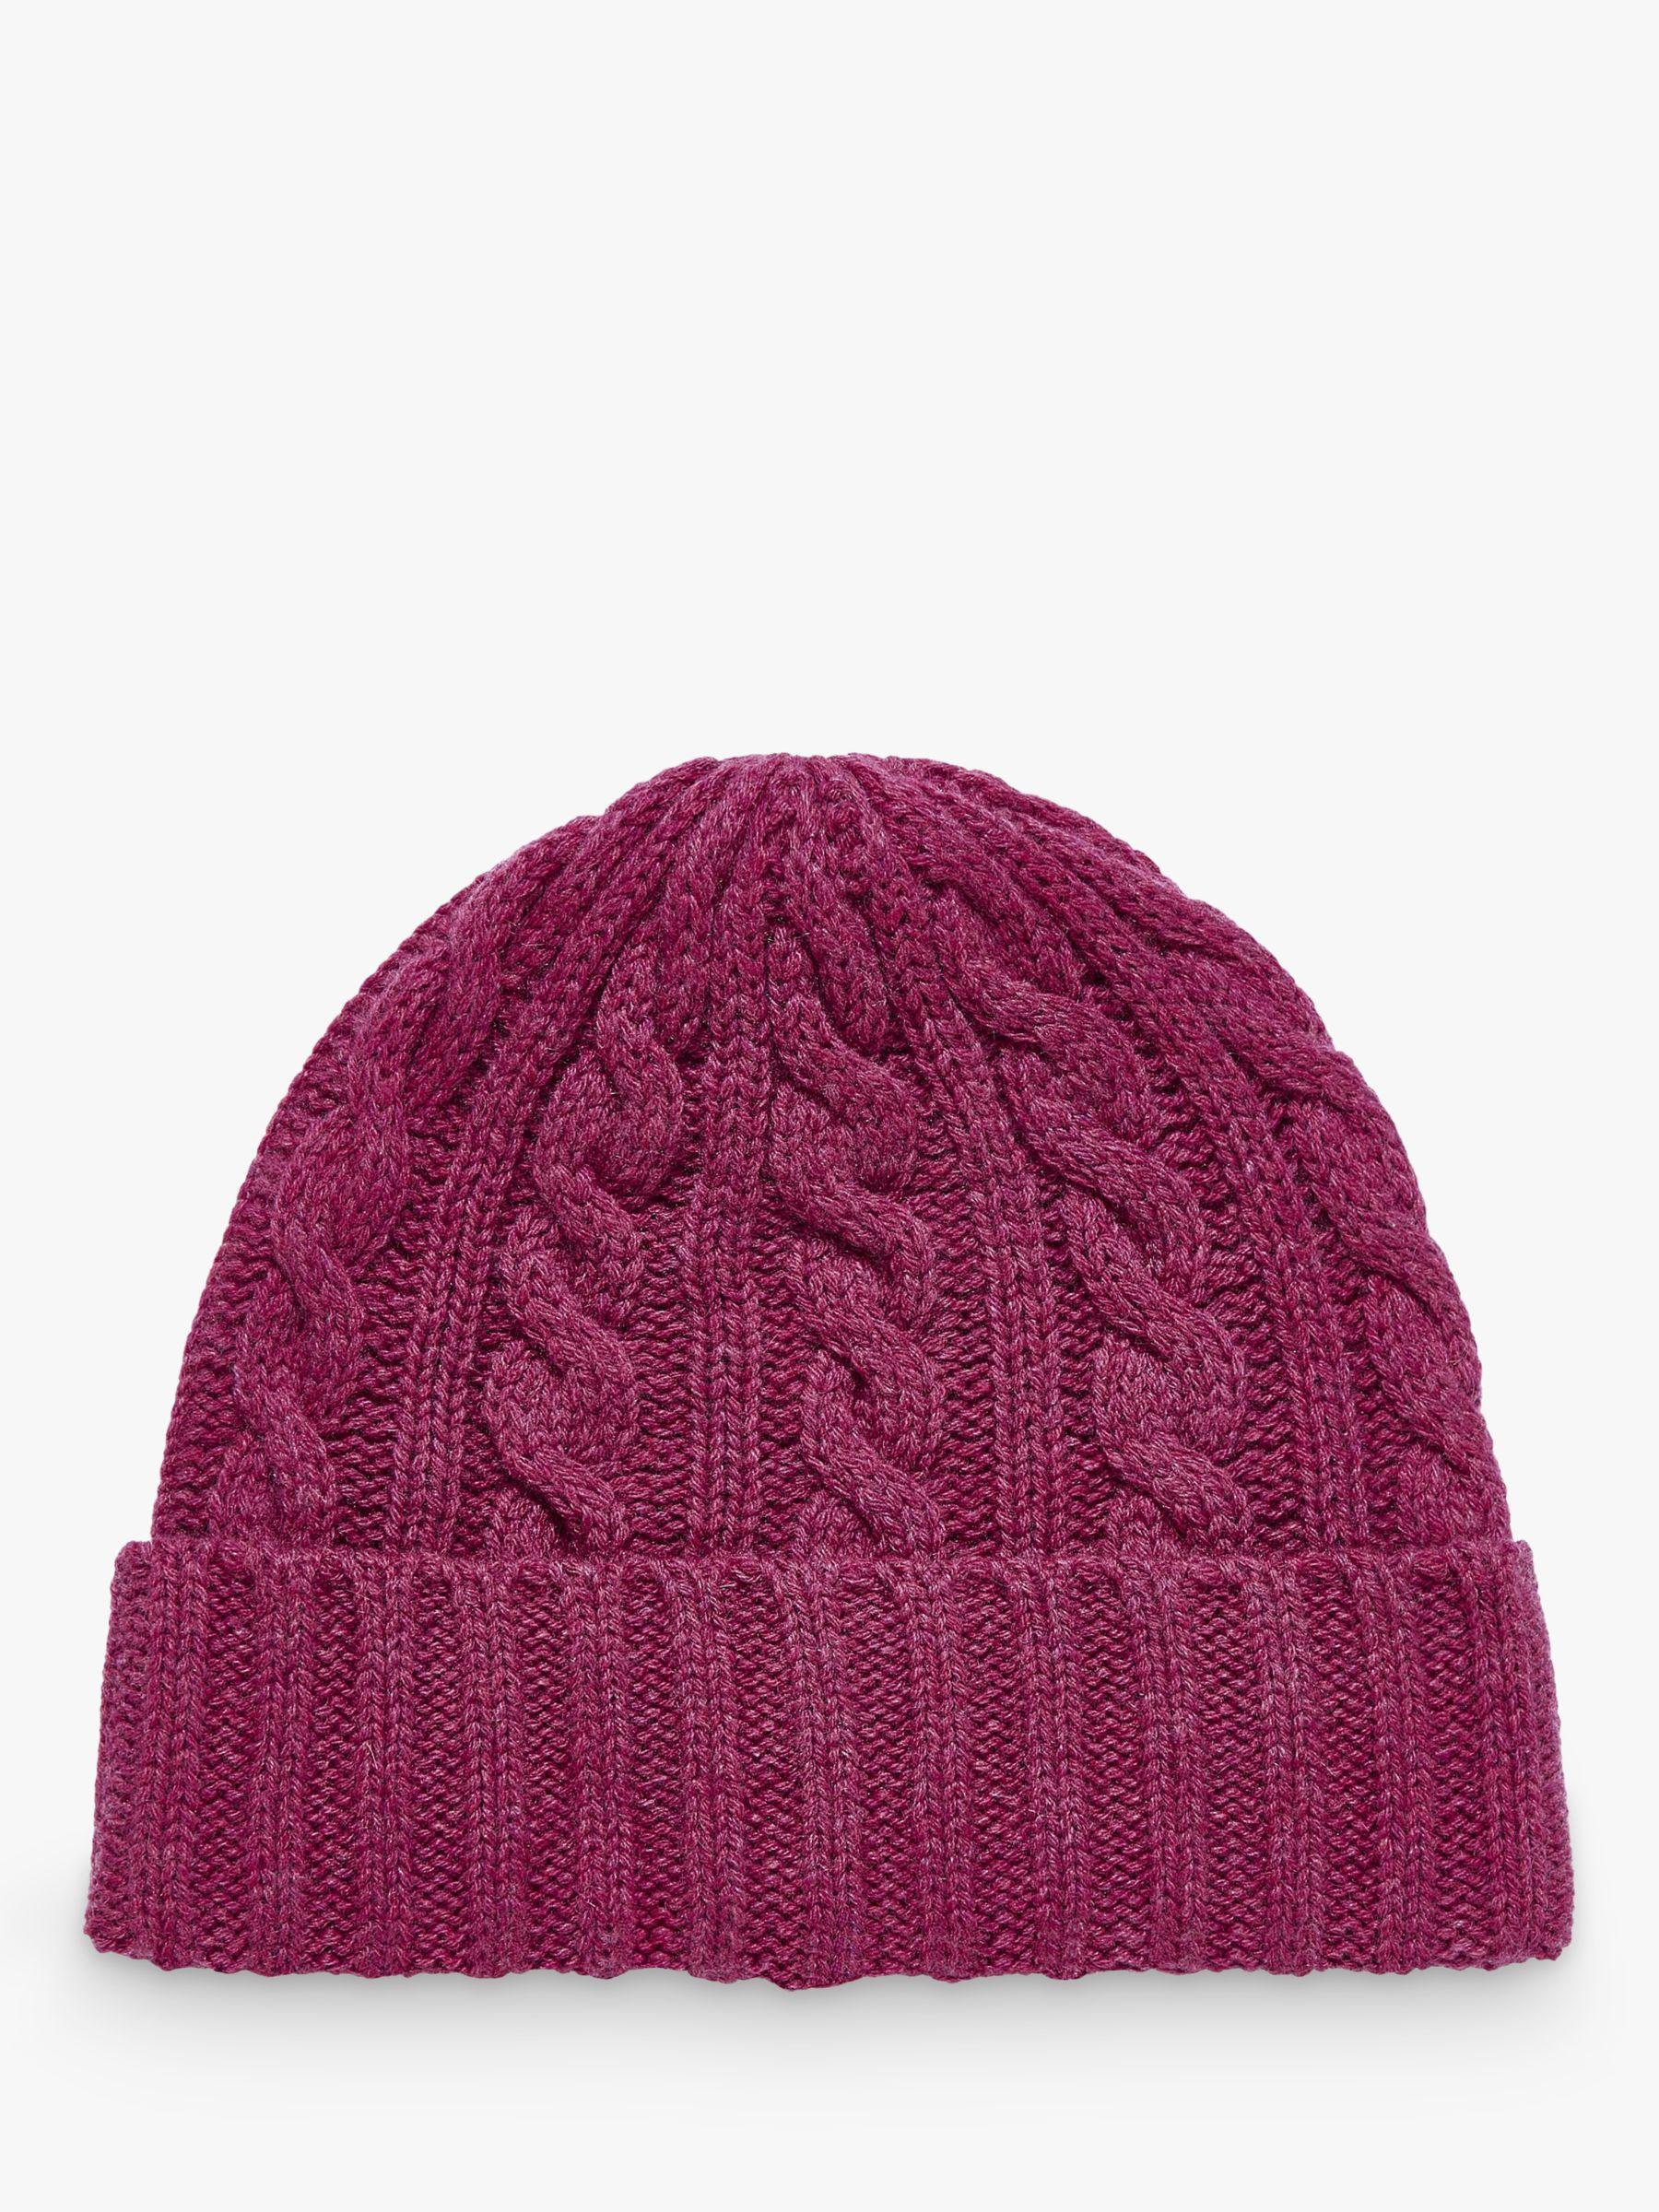 Brora - Purple Cashmere Cable Knit Hat - Lyst. View fullscreen 940065f45b65